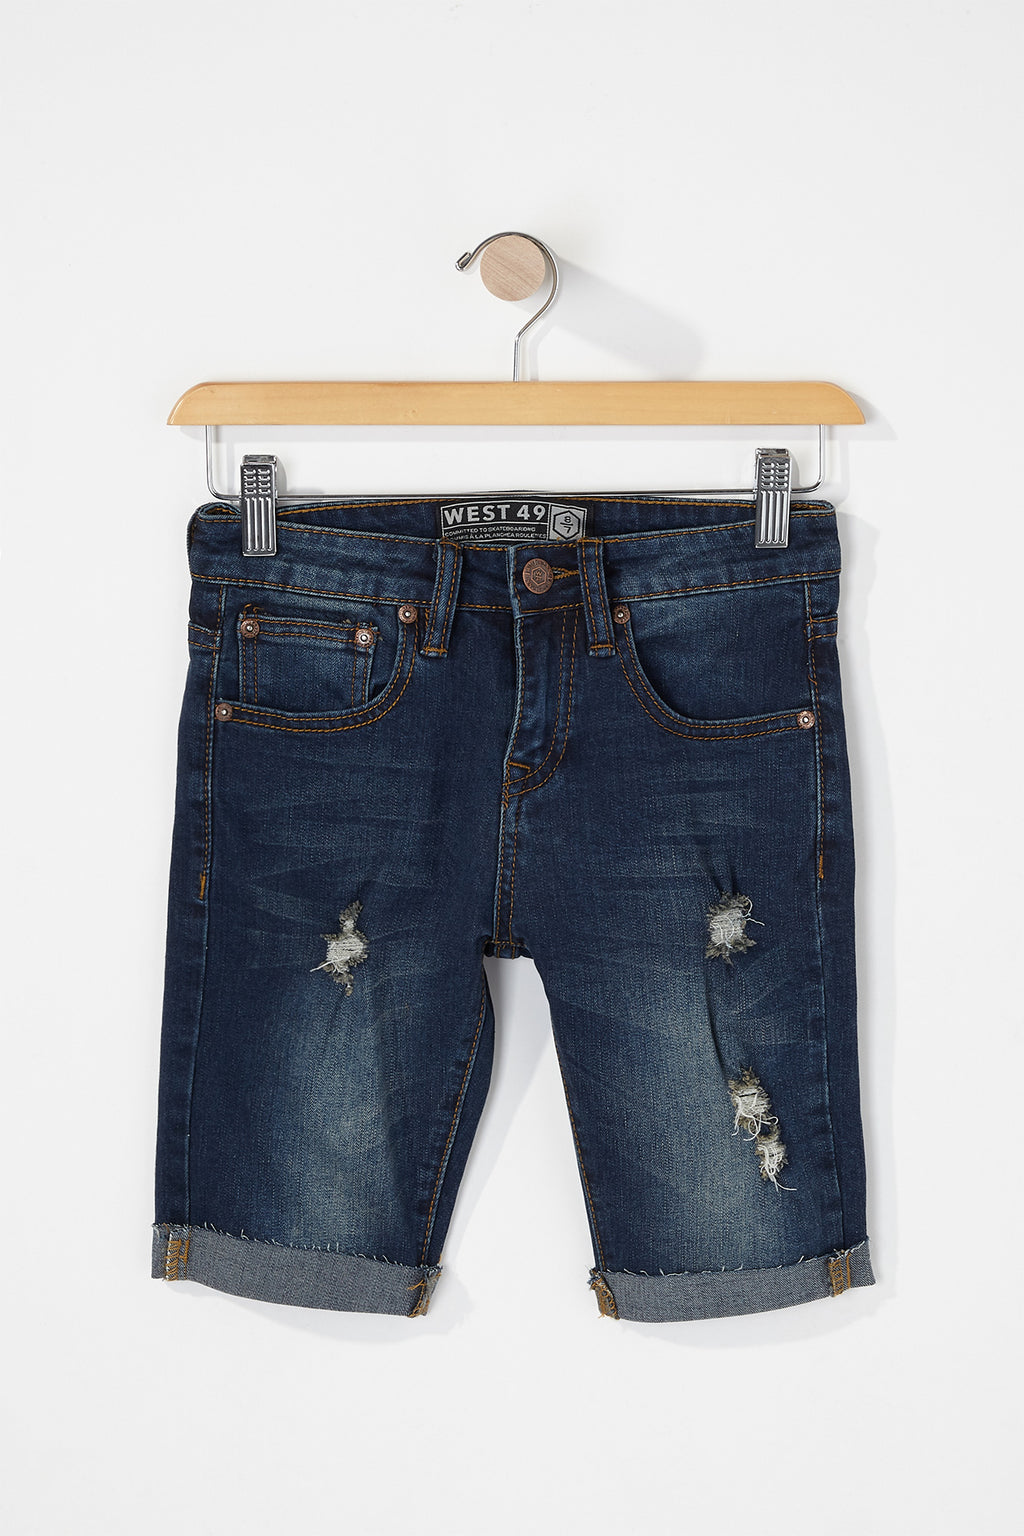 West49 Boys Destruct Denim Shorts